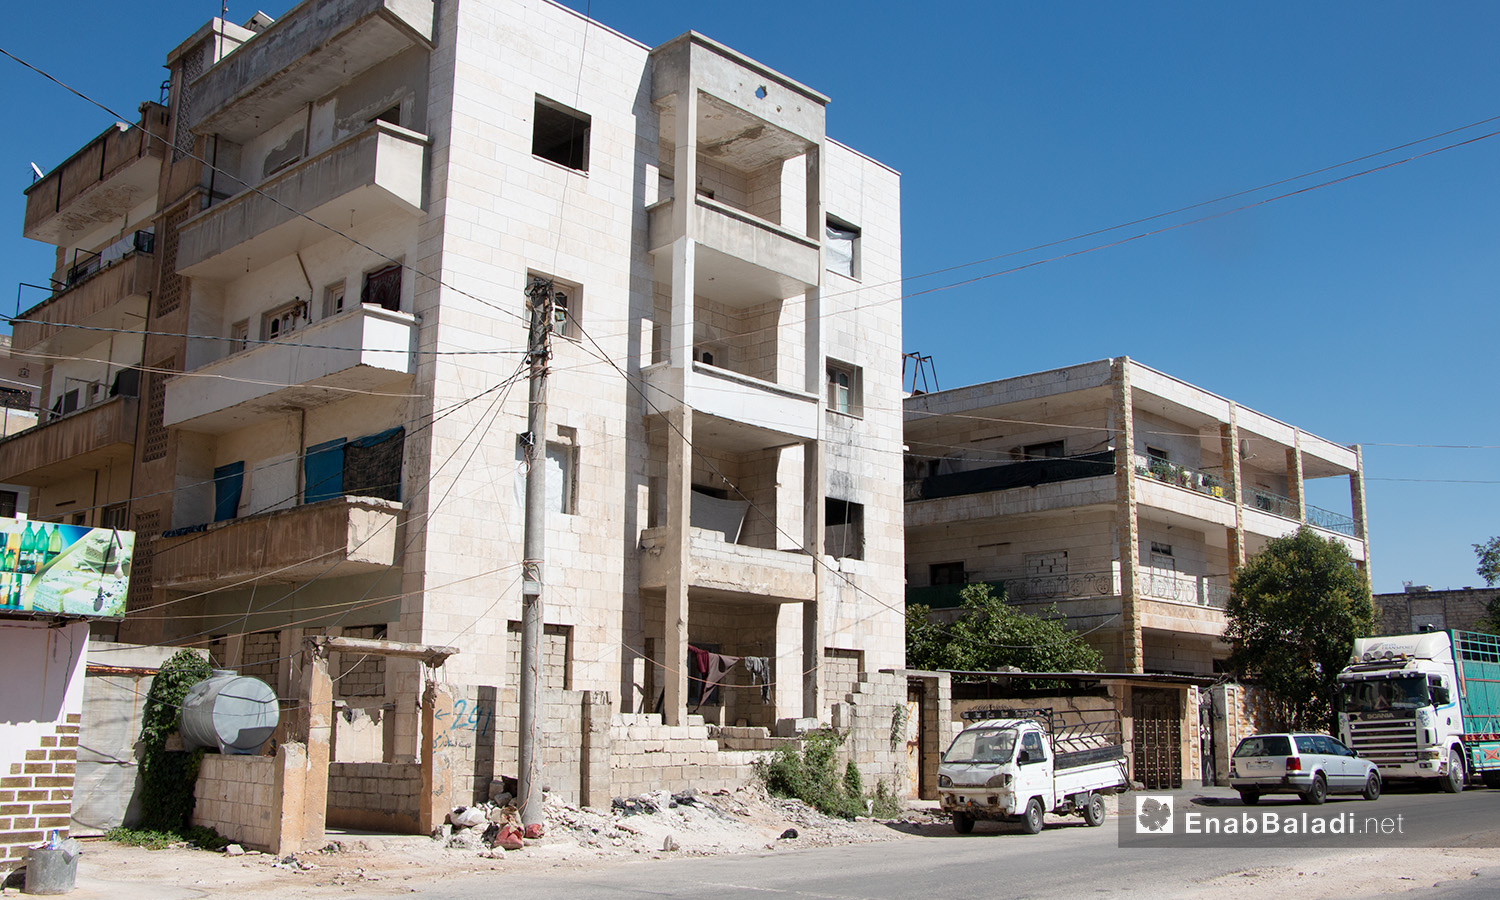 Building in a neighborhood of Idlib - 14 July 2020 (Enab Baladi / Anas Al-Khouli)